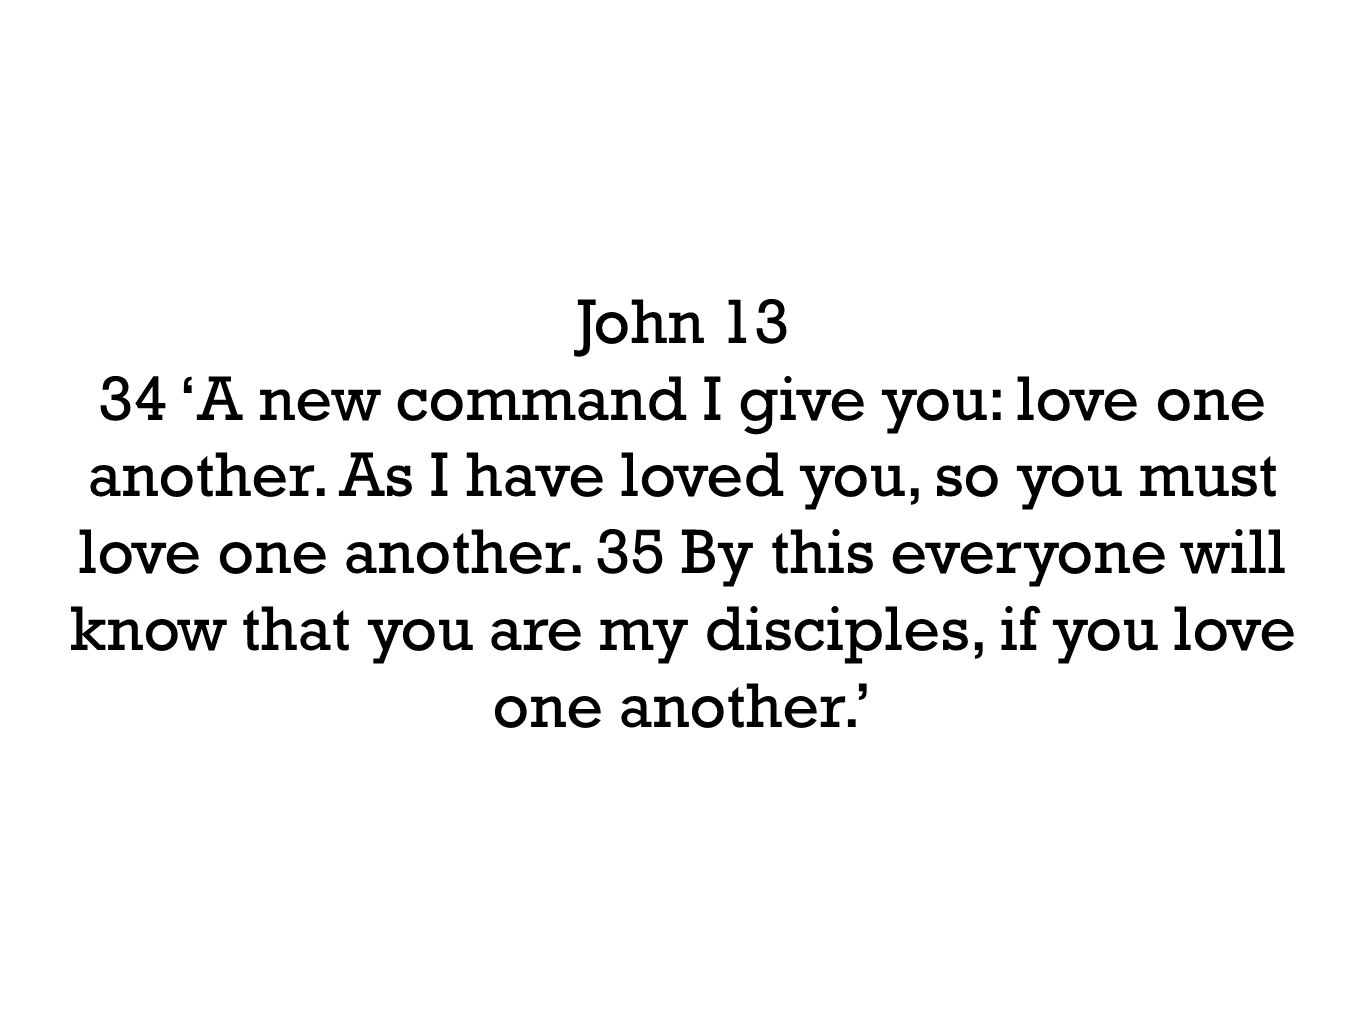 John 13 34 'A new command I give you: love one another.